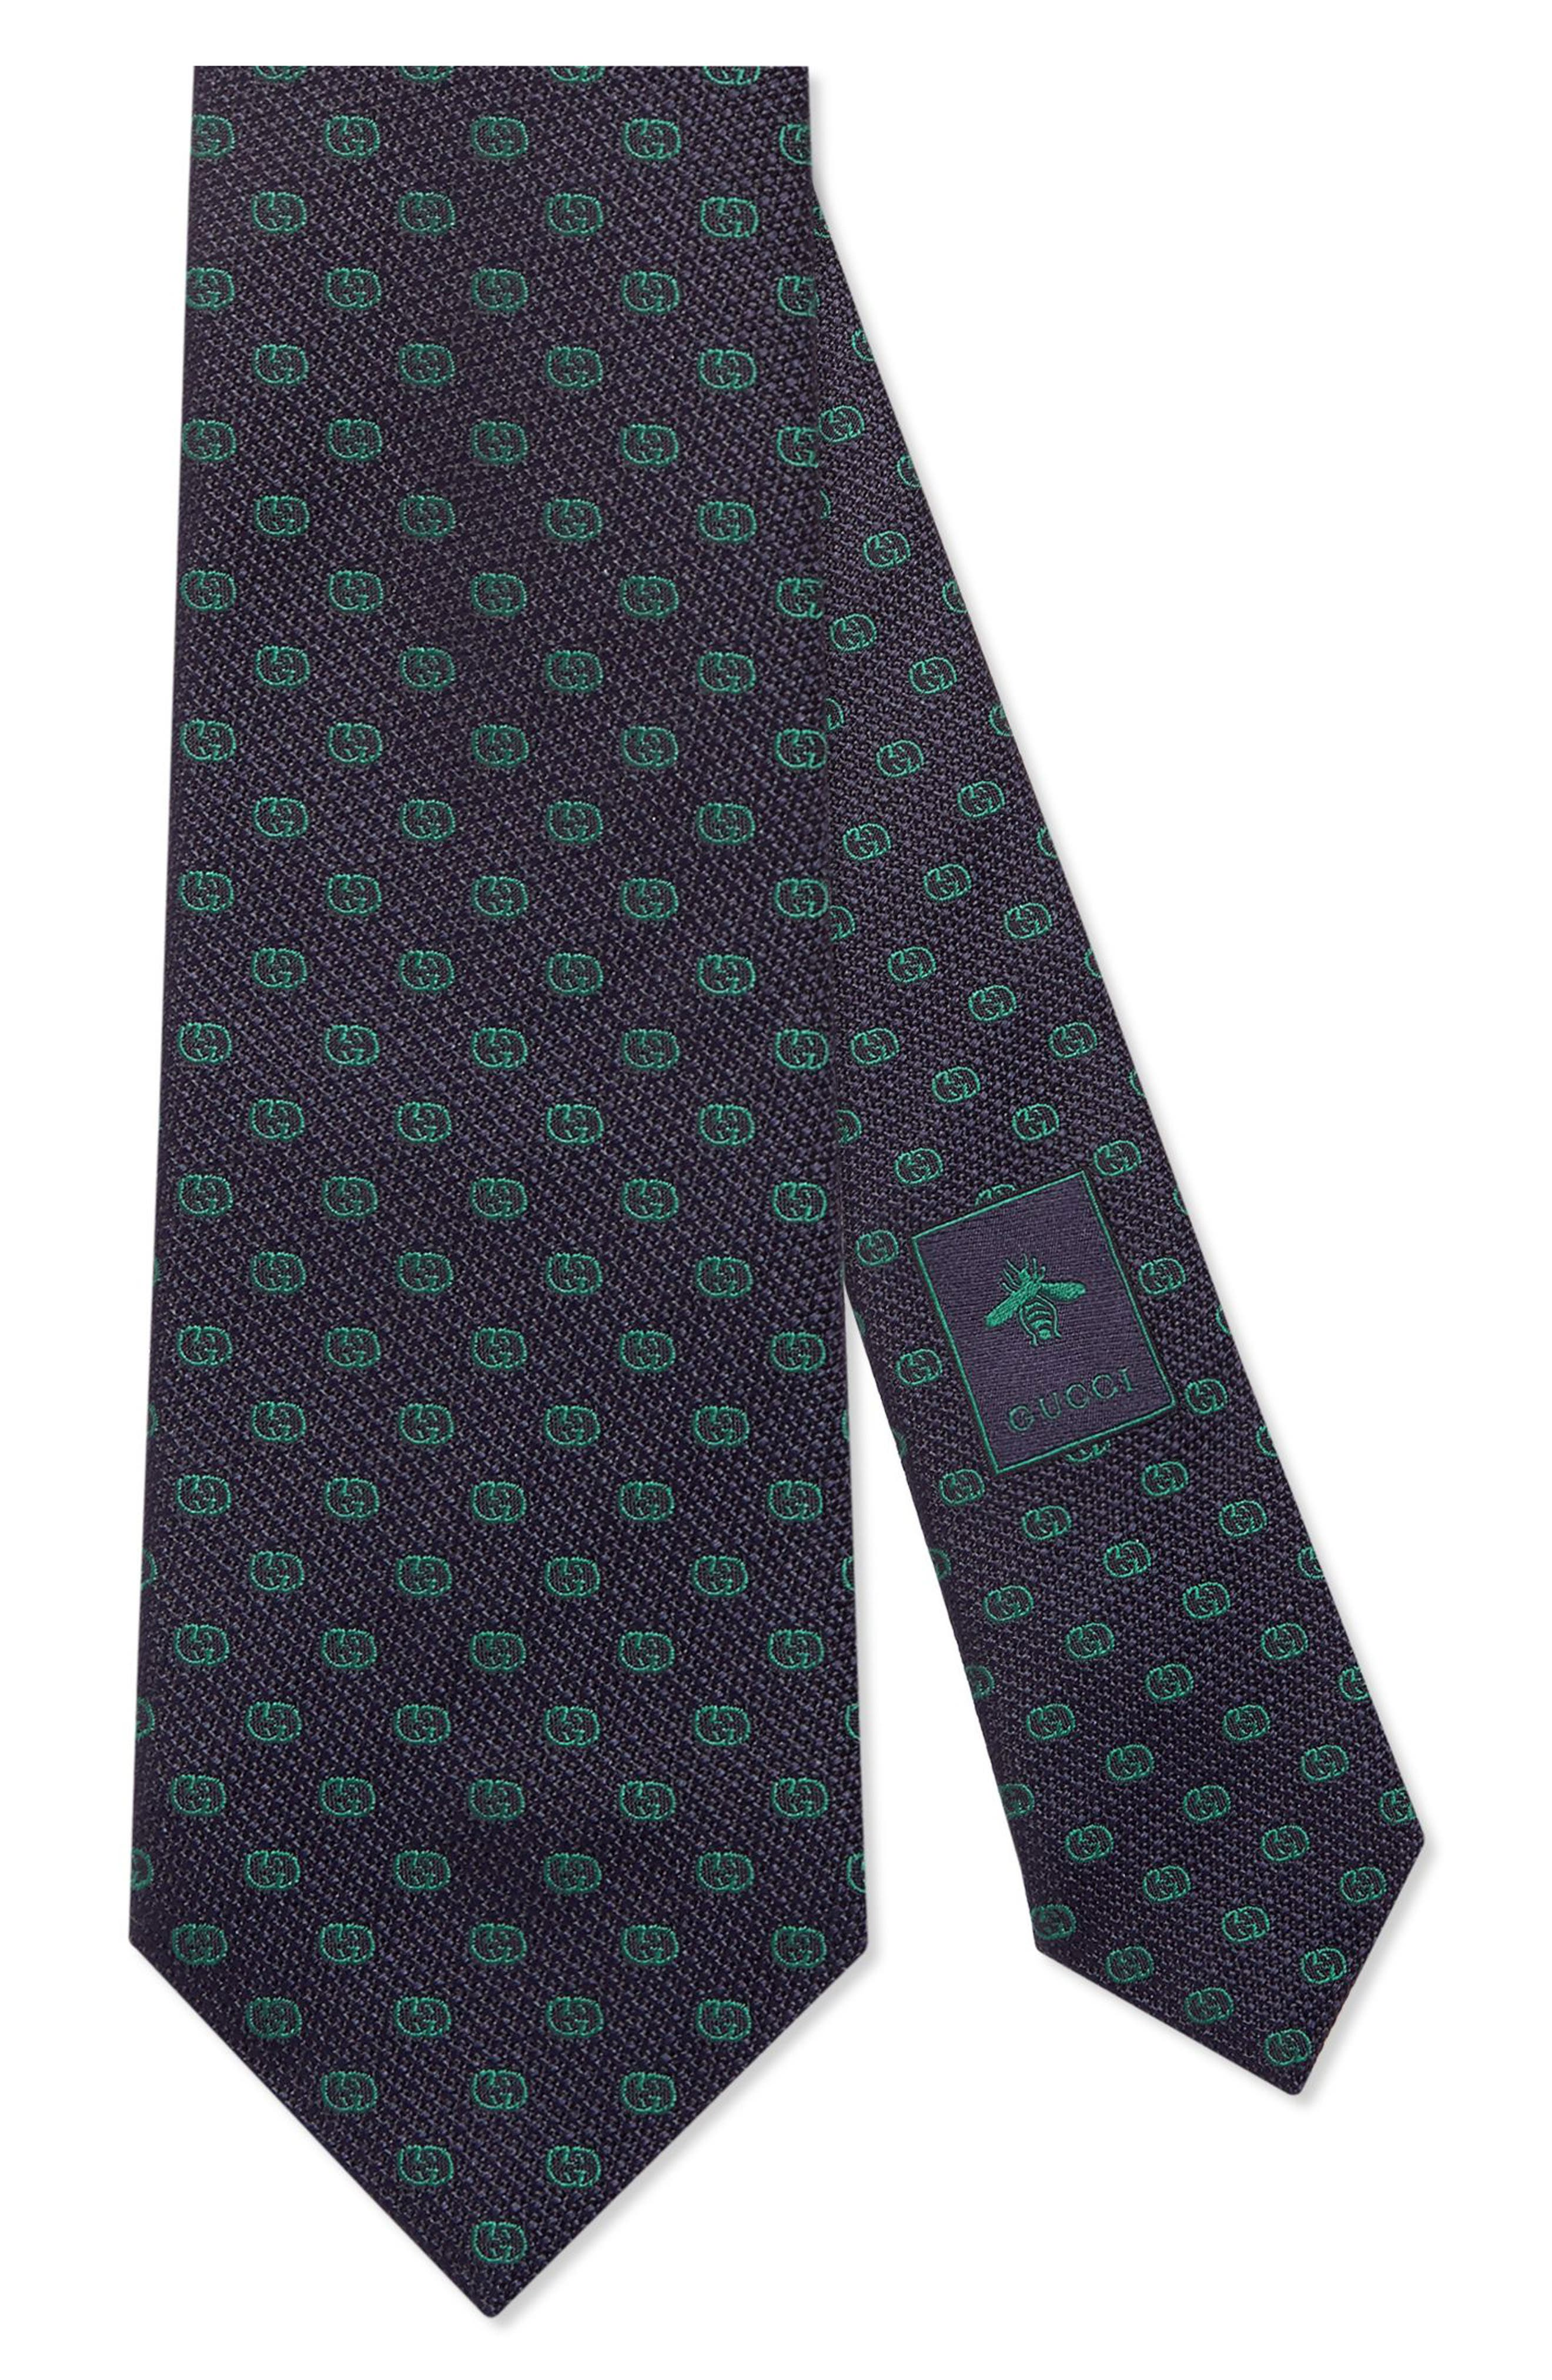 GG Tinev Silk Jacquard Tie,                             Main thumbnail 1, color,                             4066 MIDNIGHT GREEN